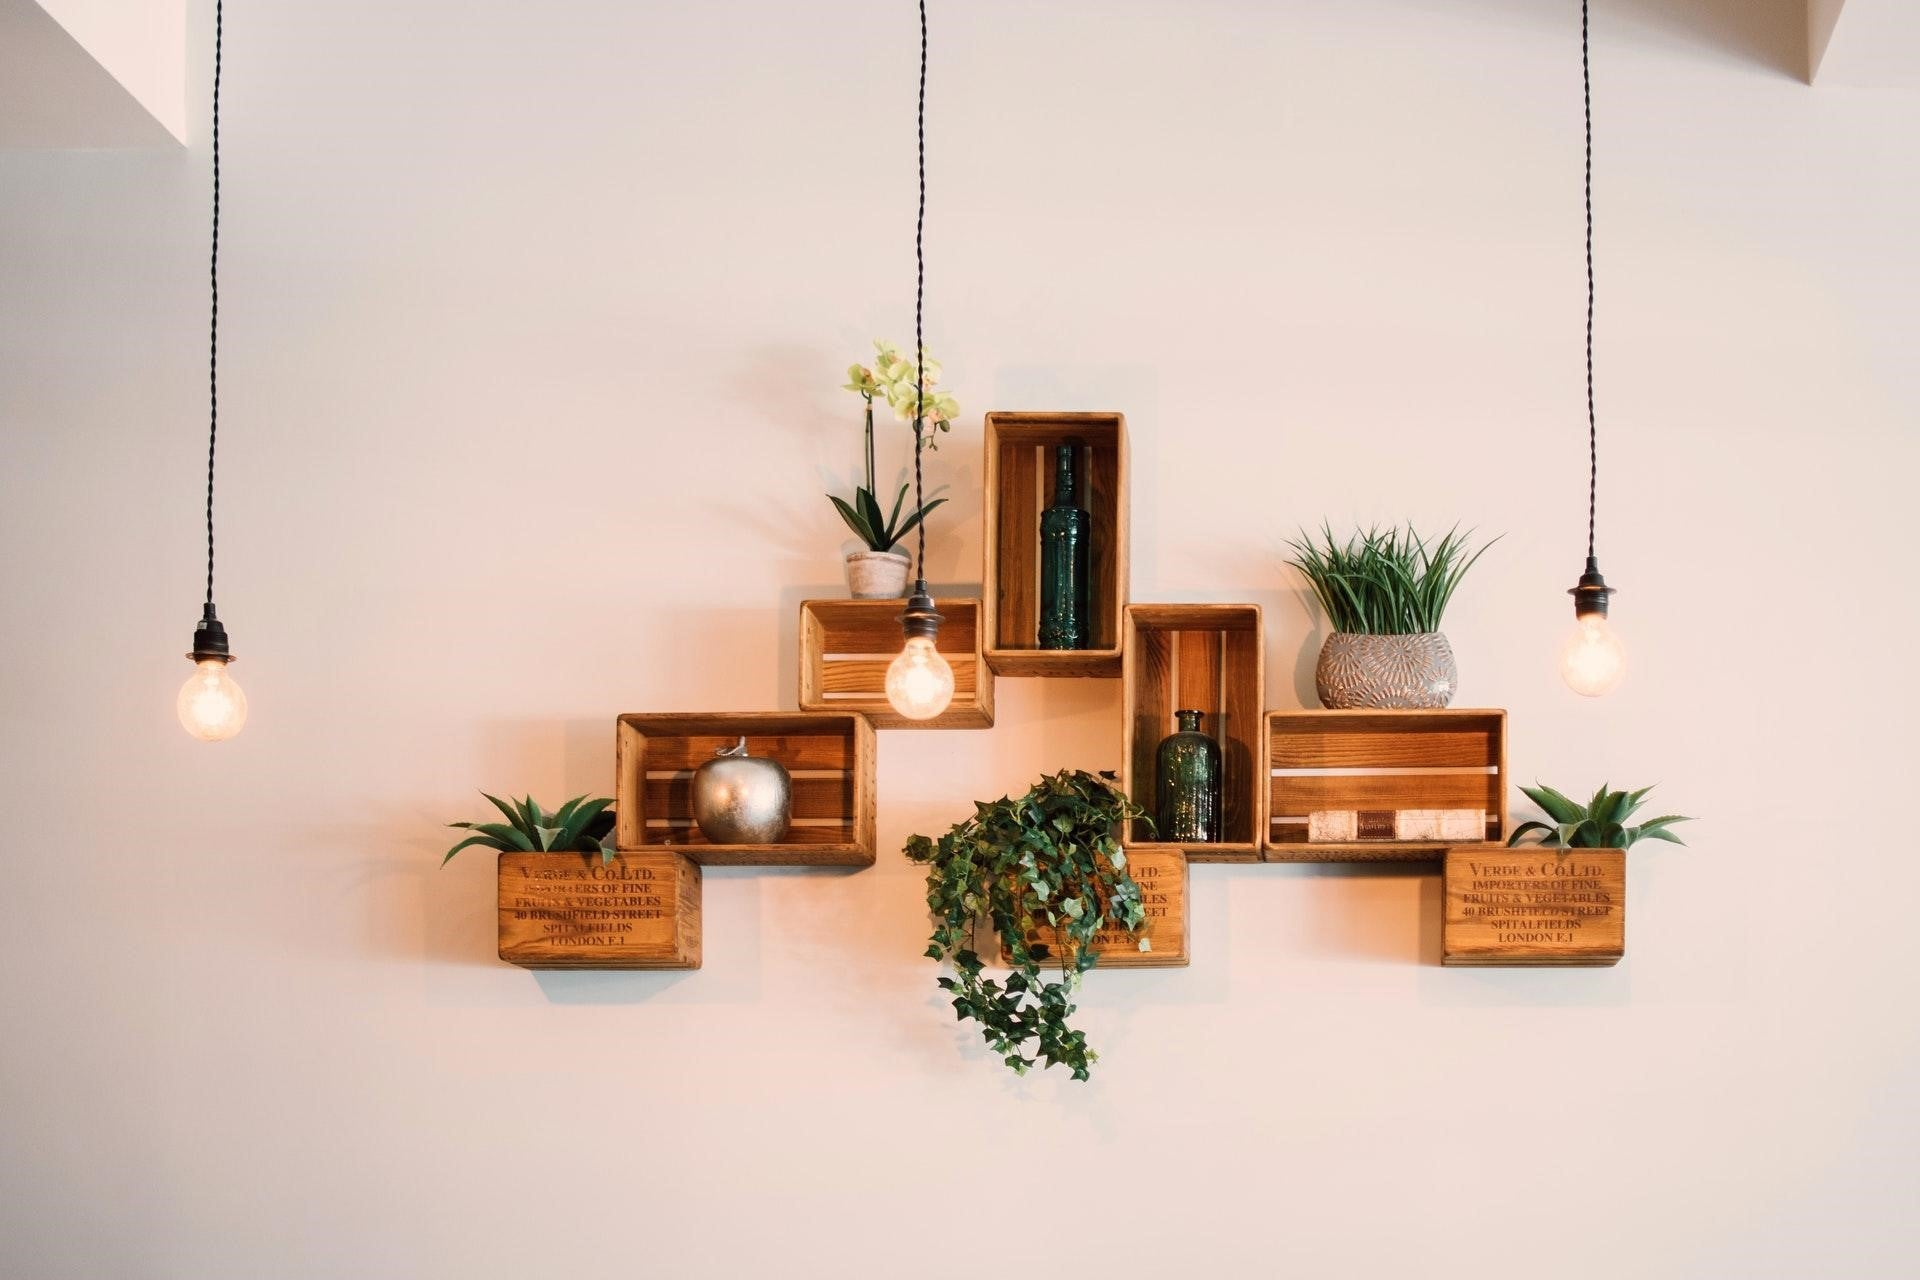 Eco Living - How To Infuse Nature-Inspired Elements Into Your Decor Using Greenery